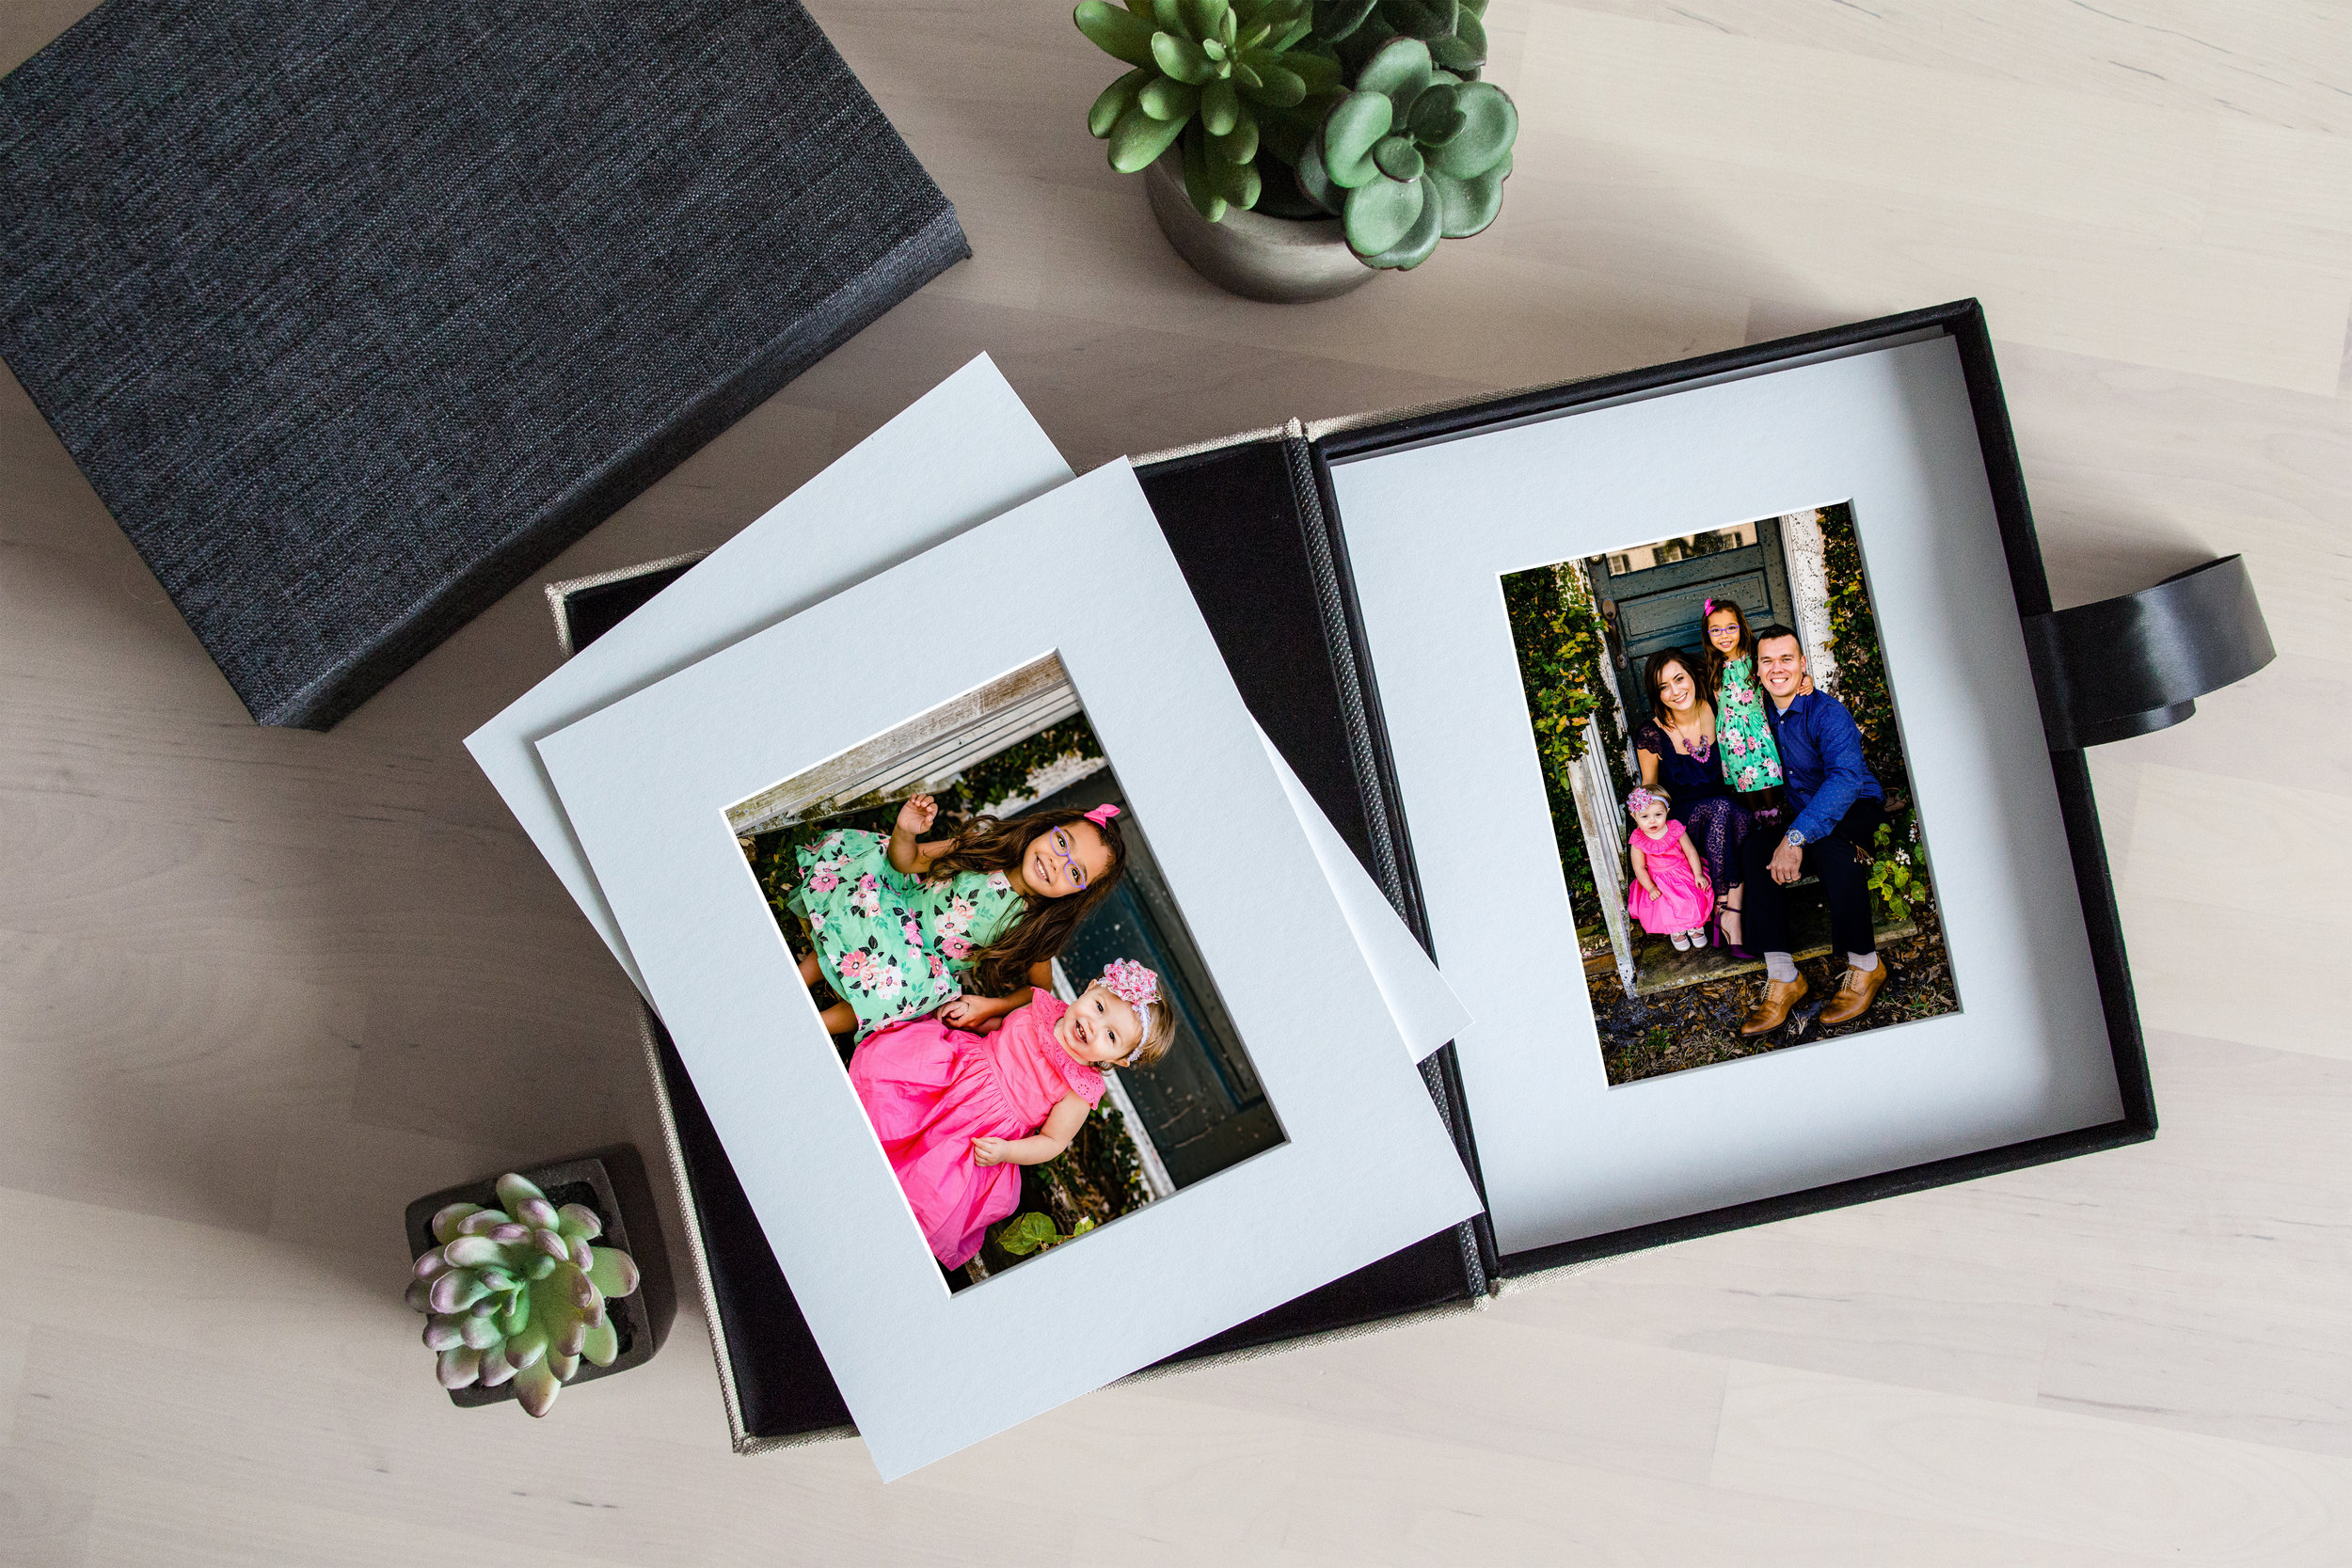 Matted Folio Boxes - Our matted folio boxes are perfect for keeping a collection of your favorite memories readily available. Perfect to keep to thumb through, opt to put one or two on display, change them out and add to your collection!